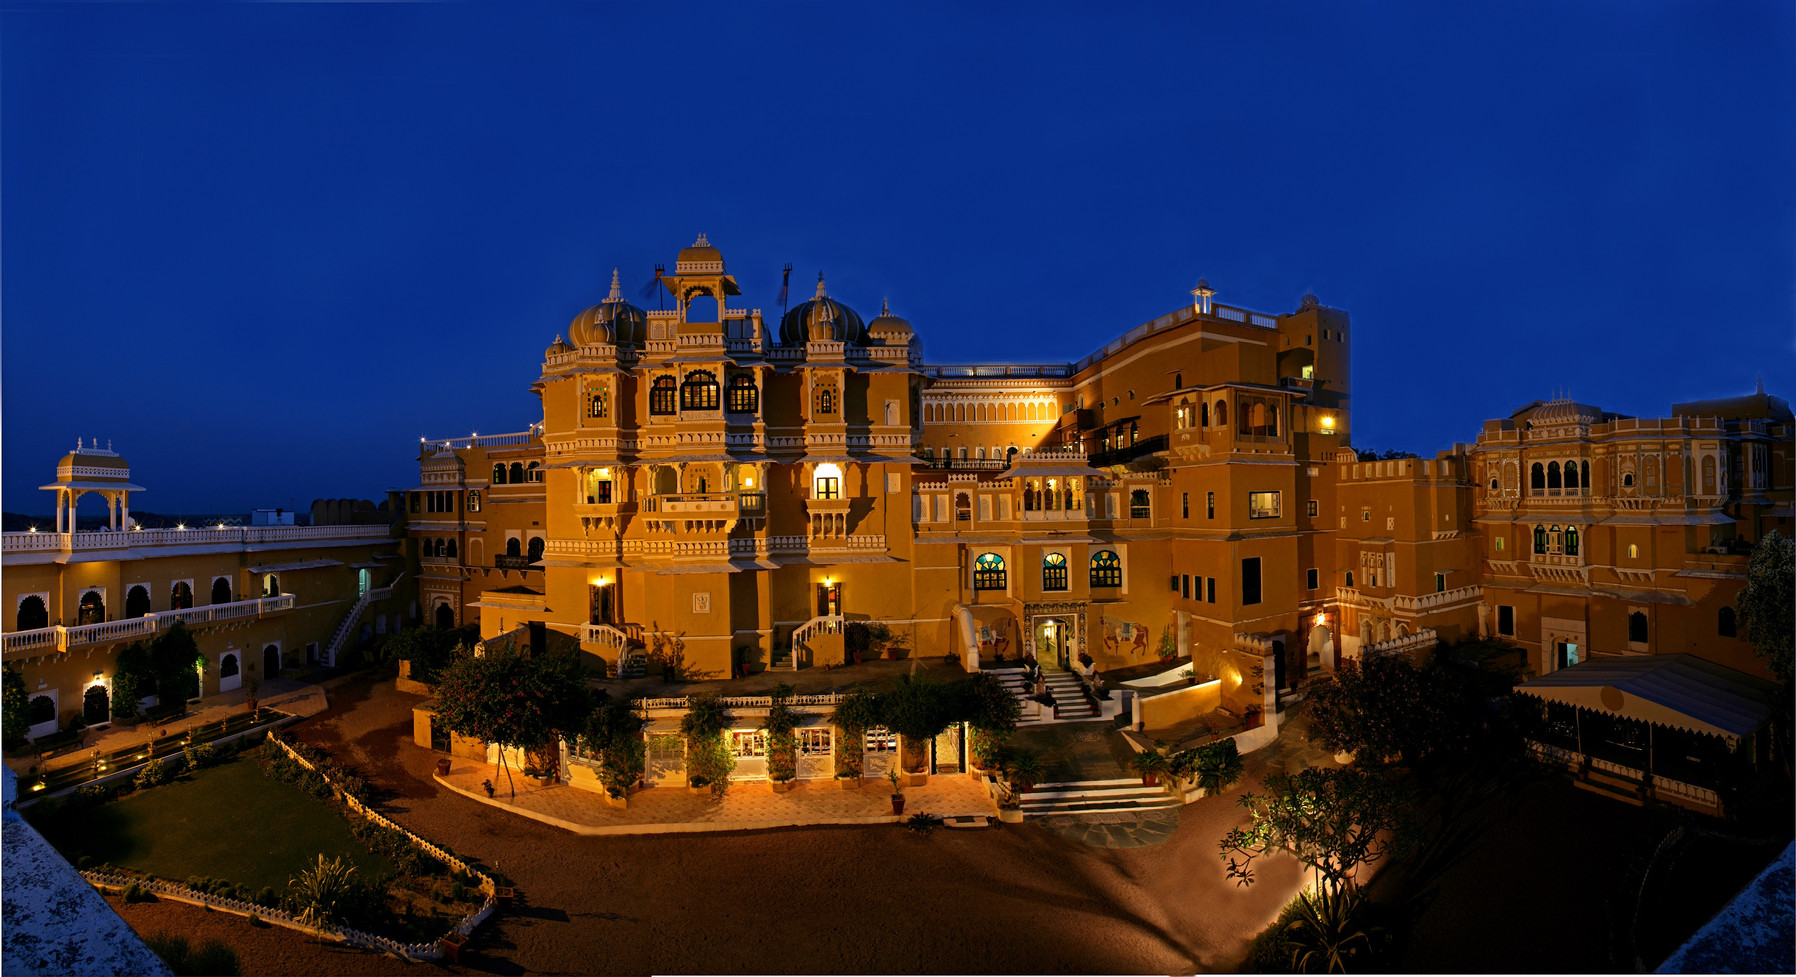 DEOGARH MAHAL PANORAMA NIGHT.jpg